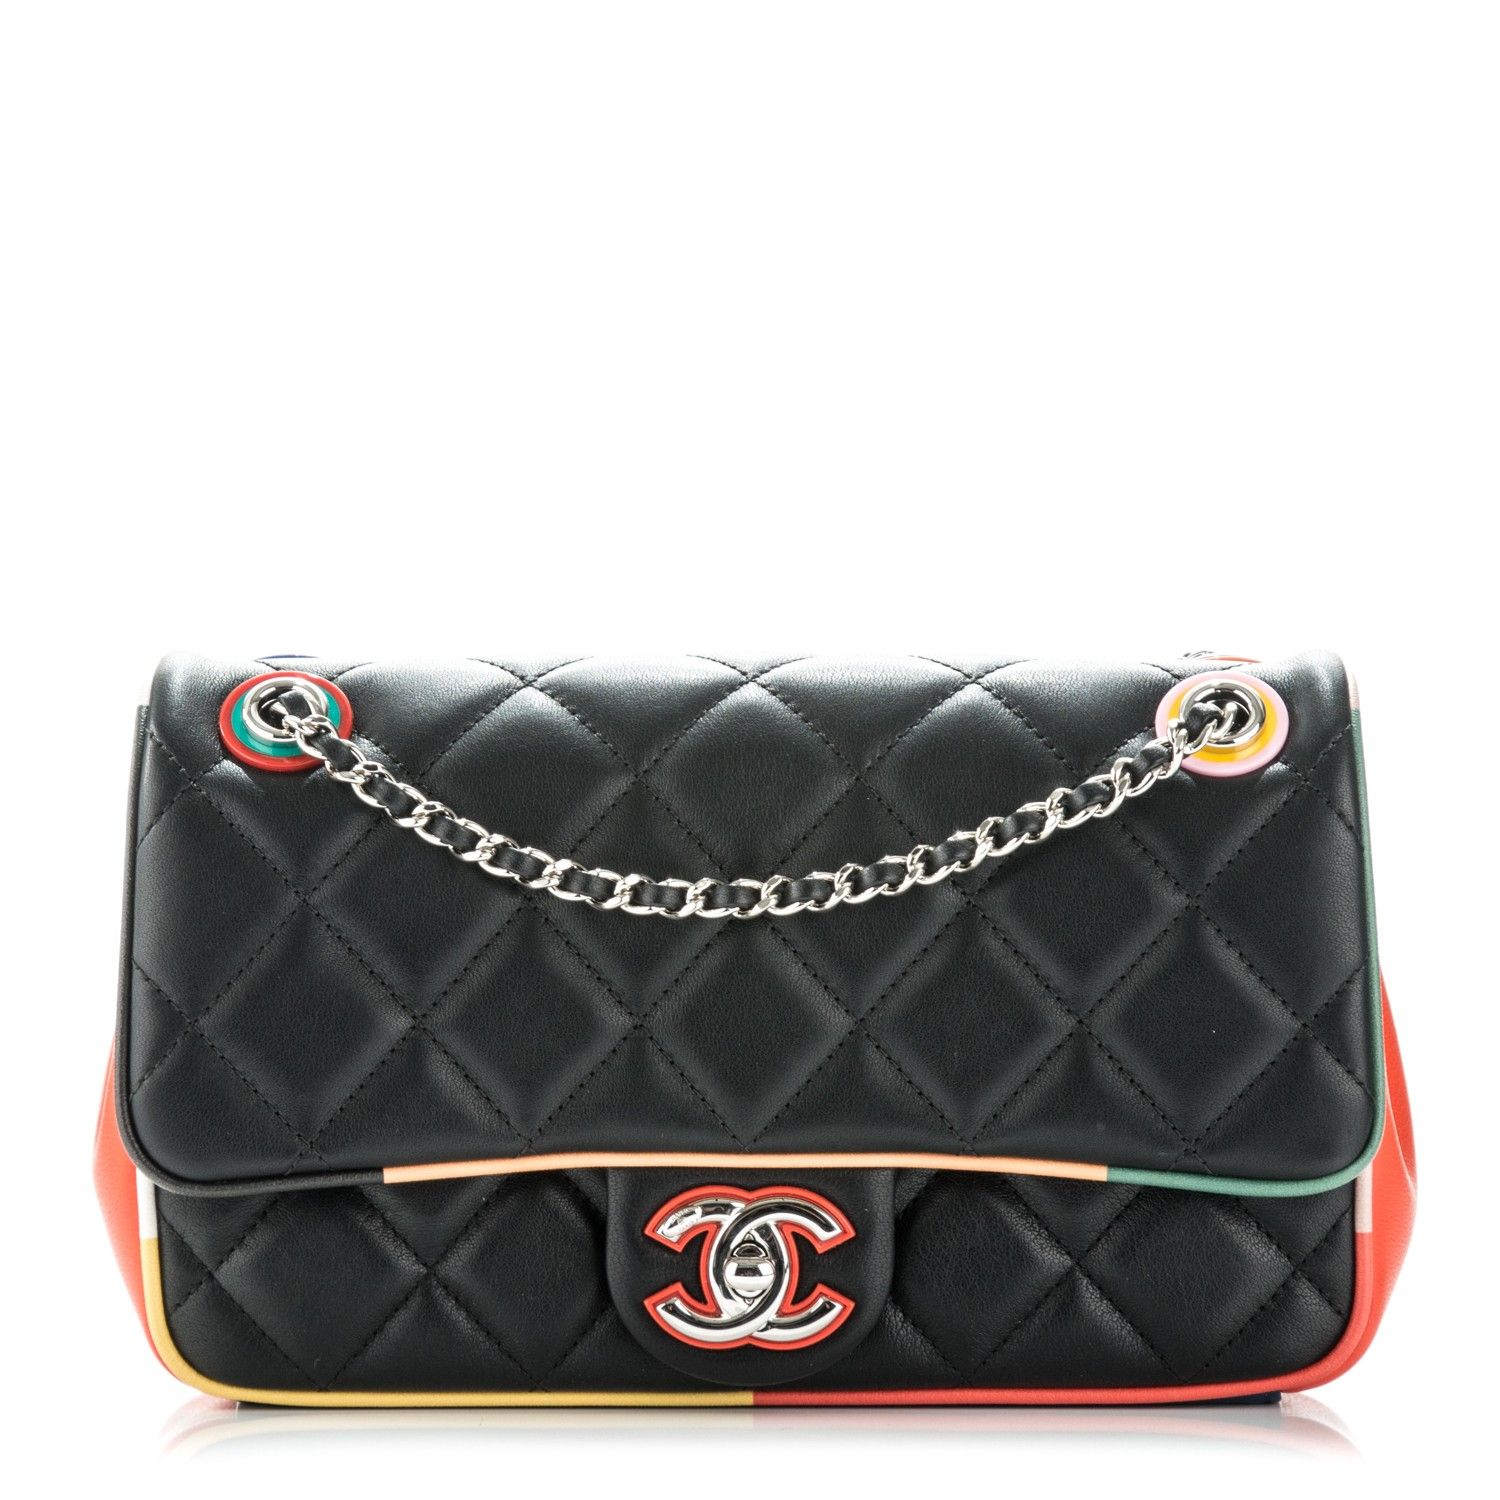 522703da801294 This is an authentic CHANEL Lambskin Quilted Small Cuba Color Flap in  Black. This festive